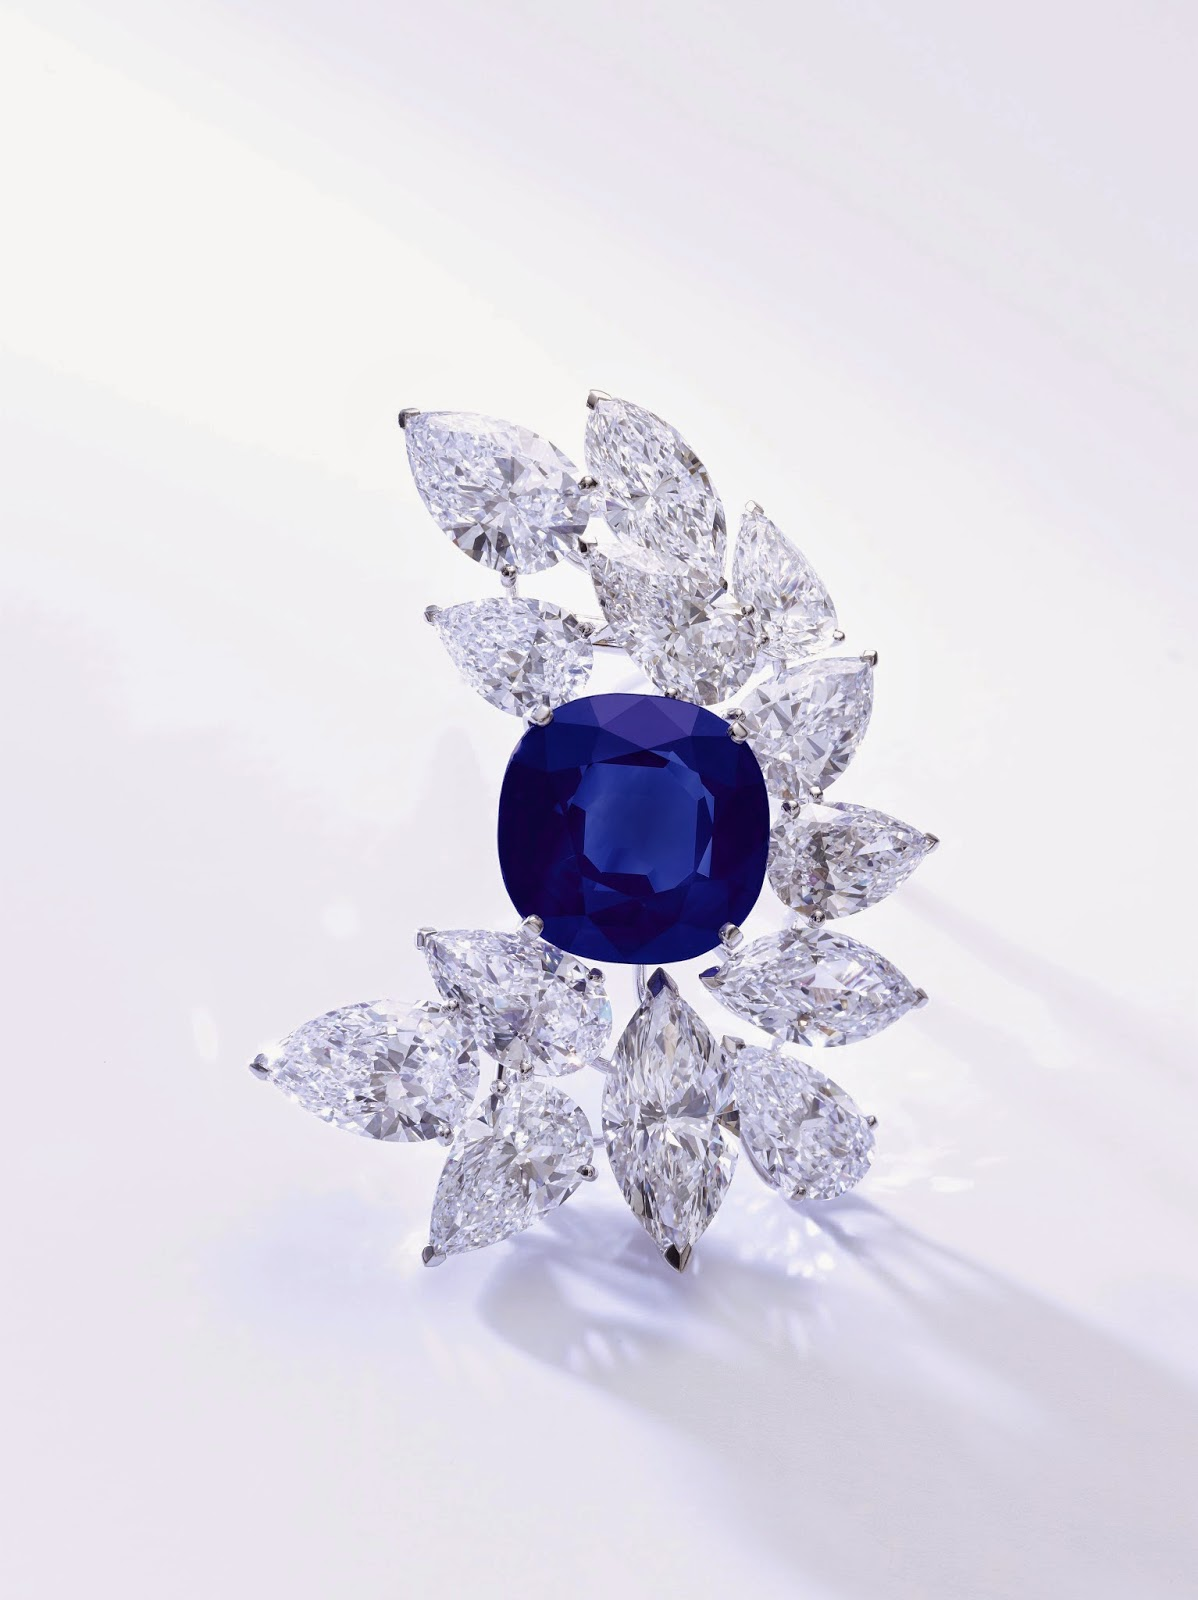 and burma no burmese ring natural diamond carat sapphire heat